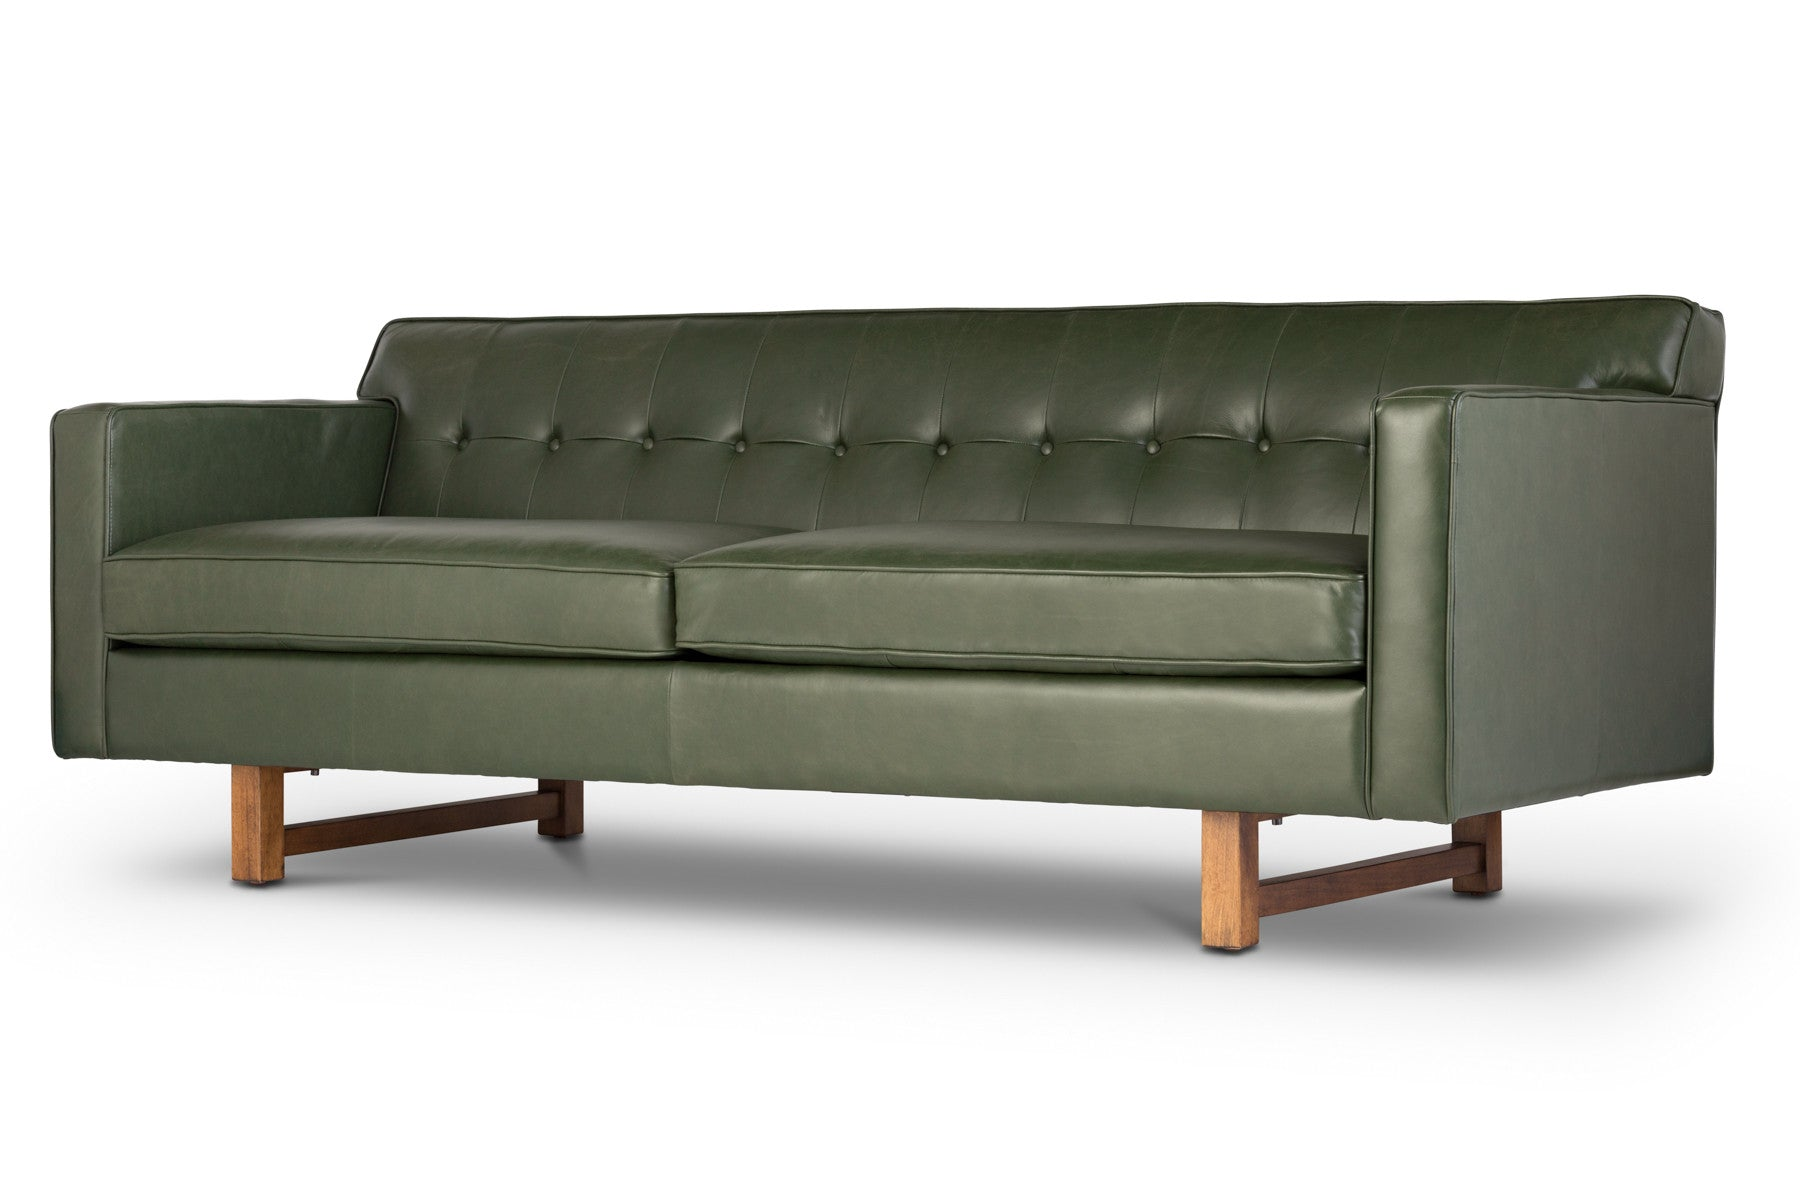 Scandinavian modern Italian leather sofa